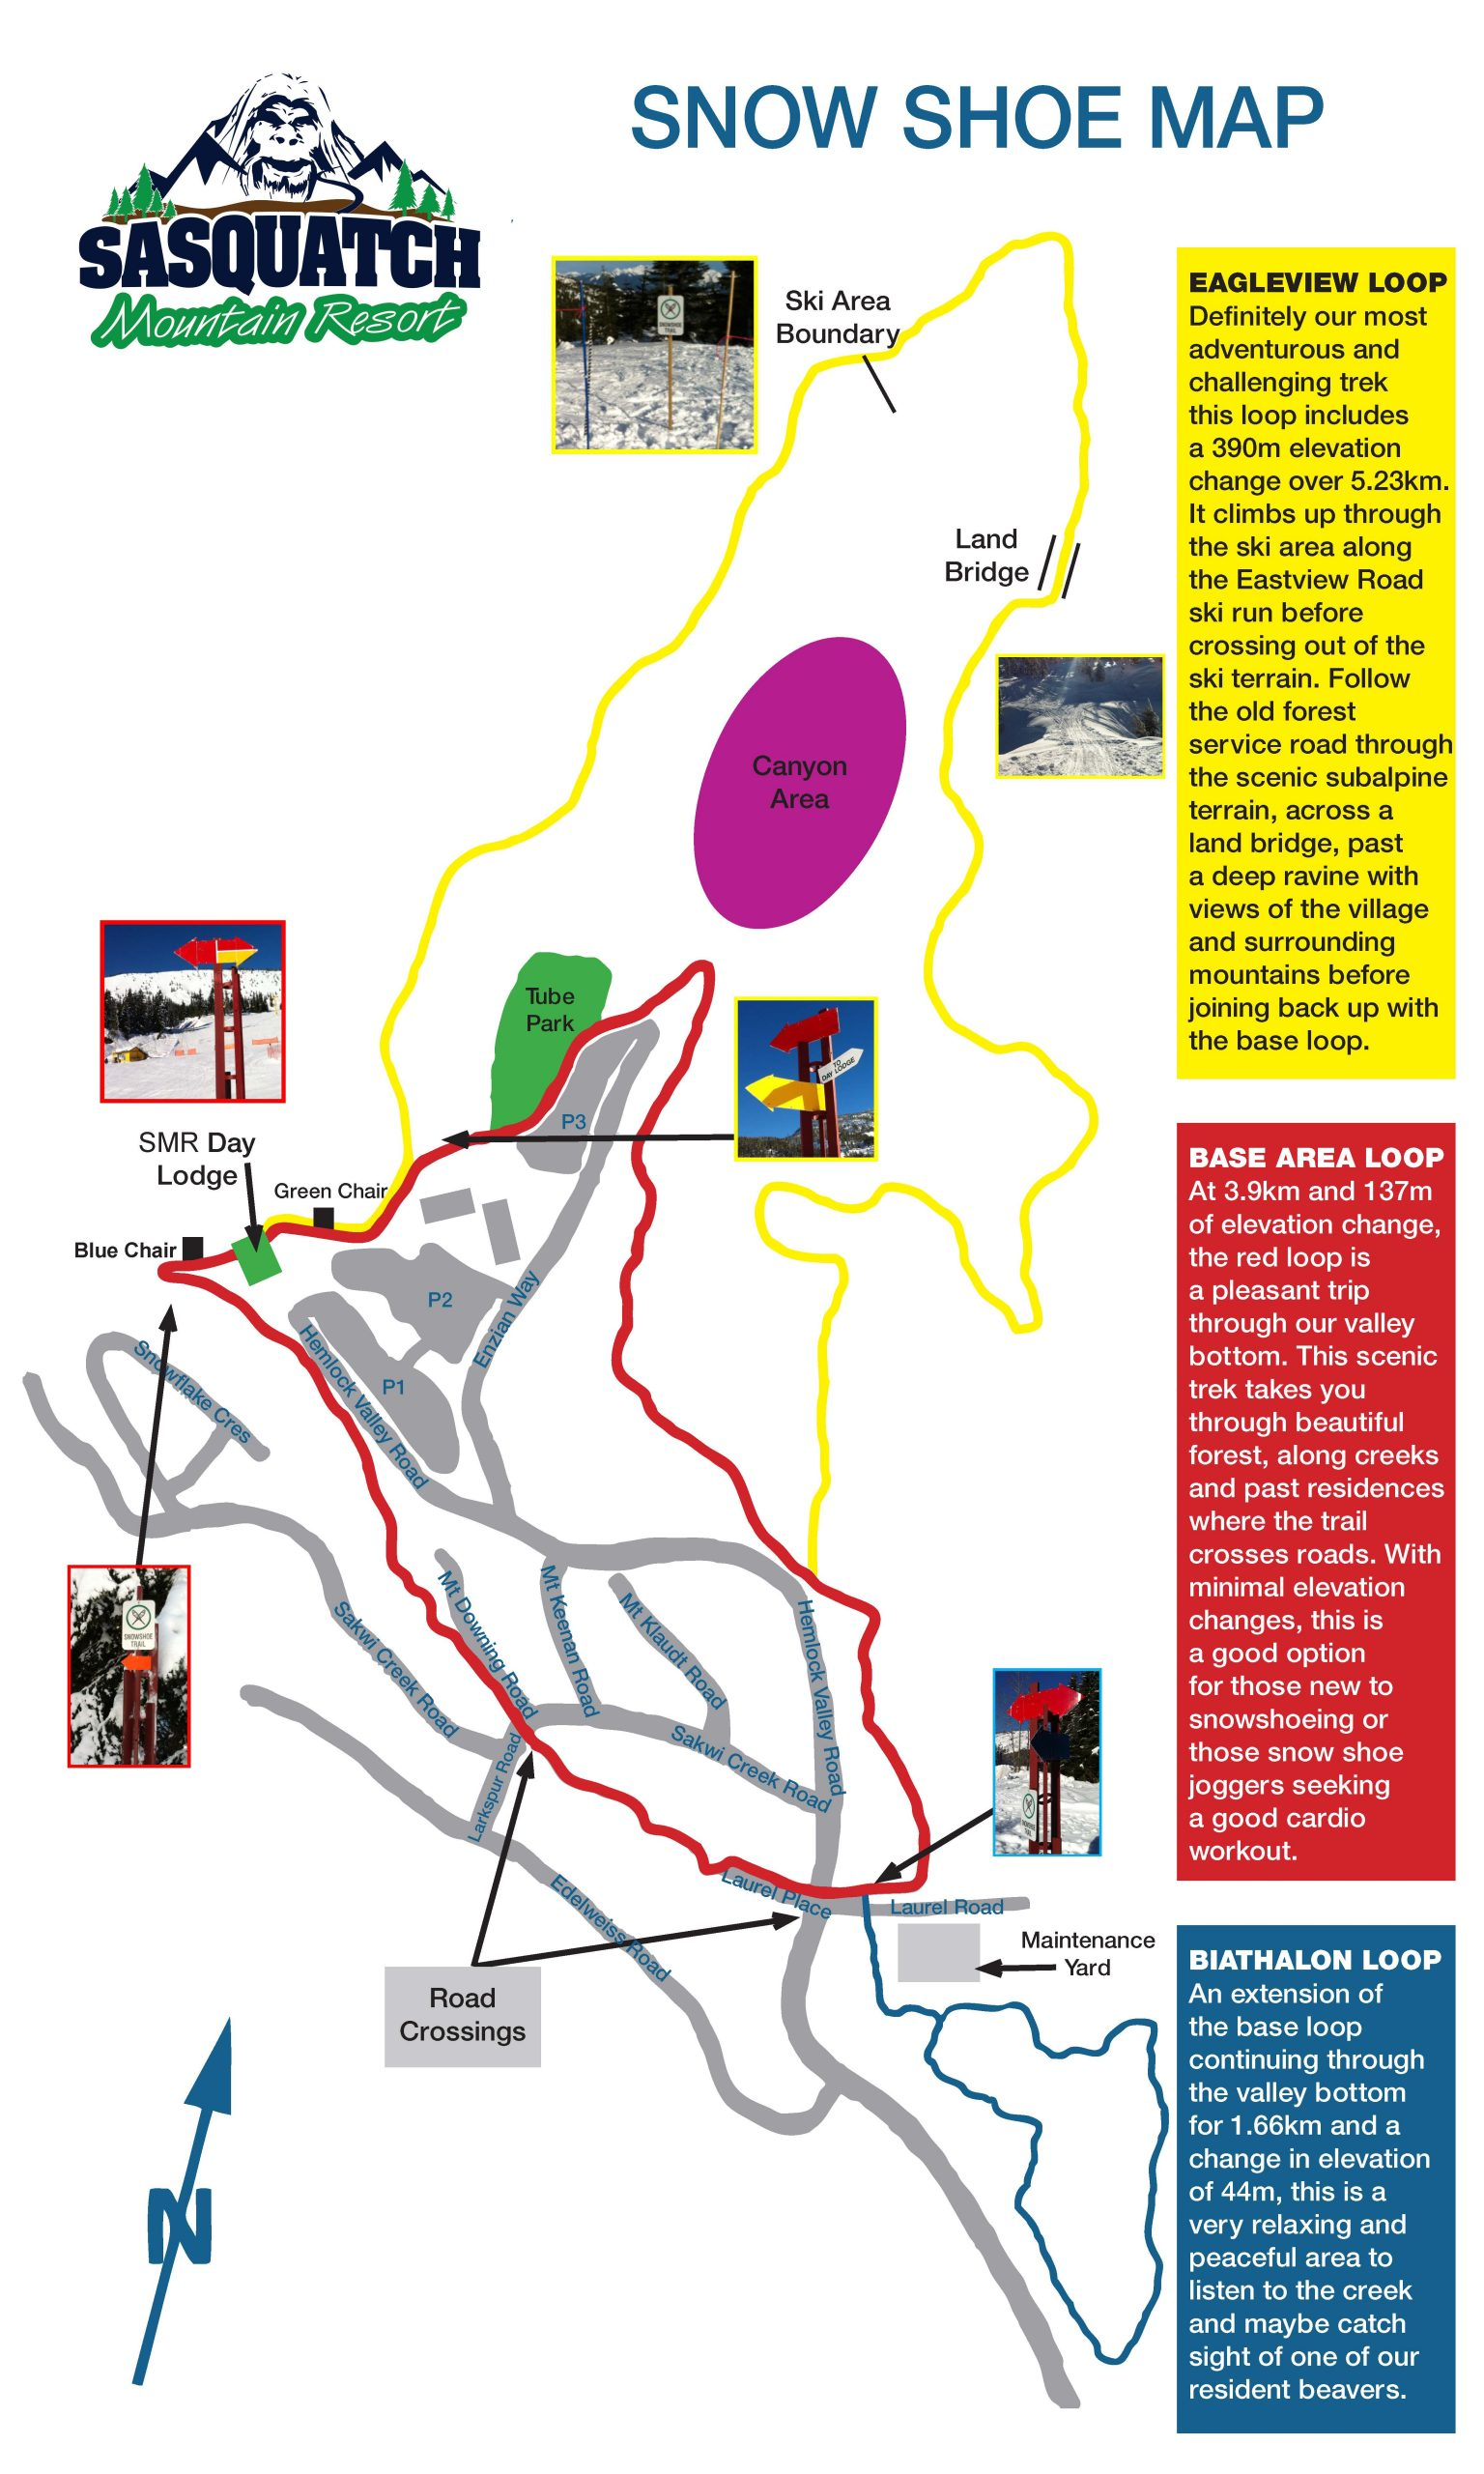 Snowshoe trail map at Sasquatch Mountain Resort